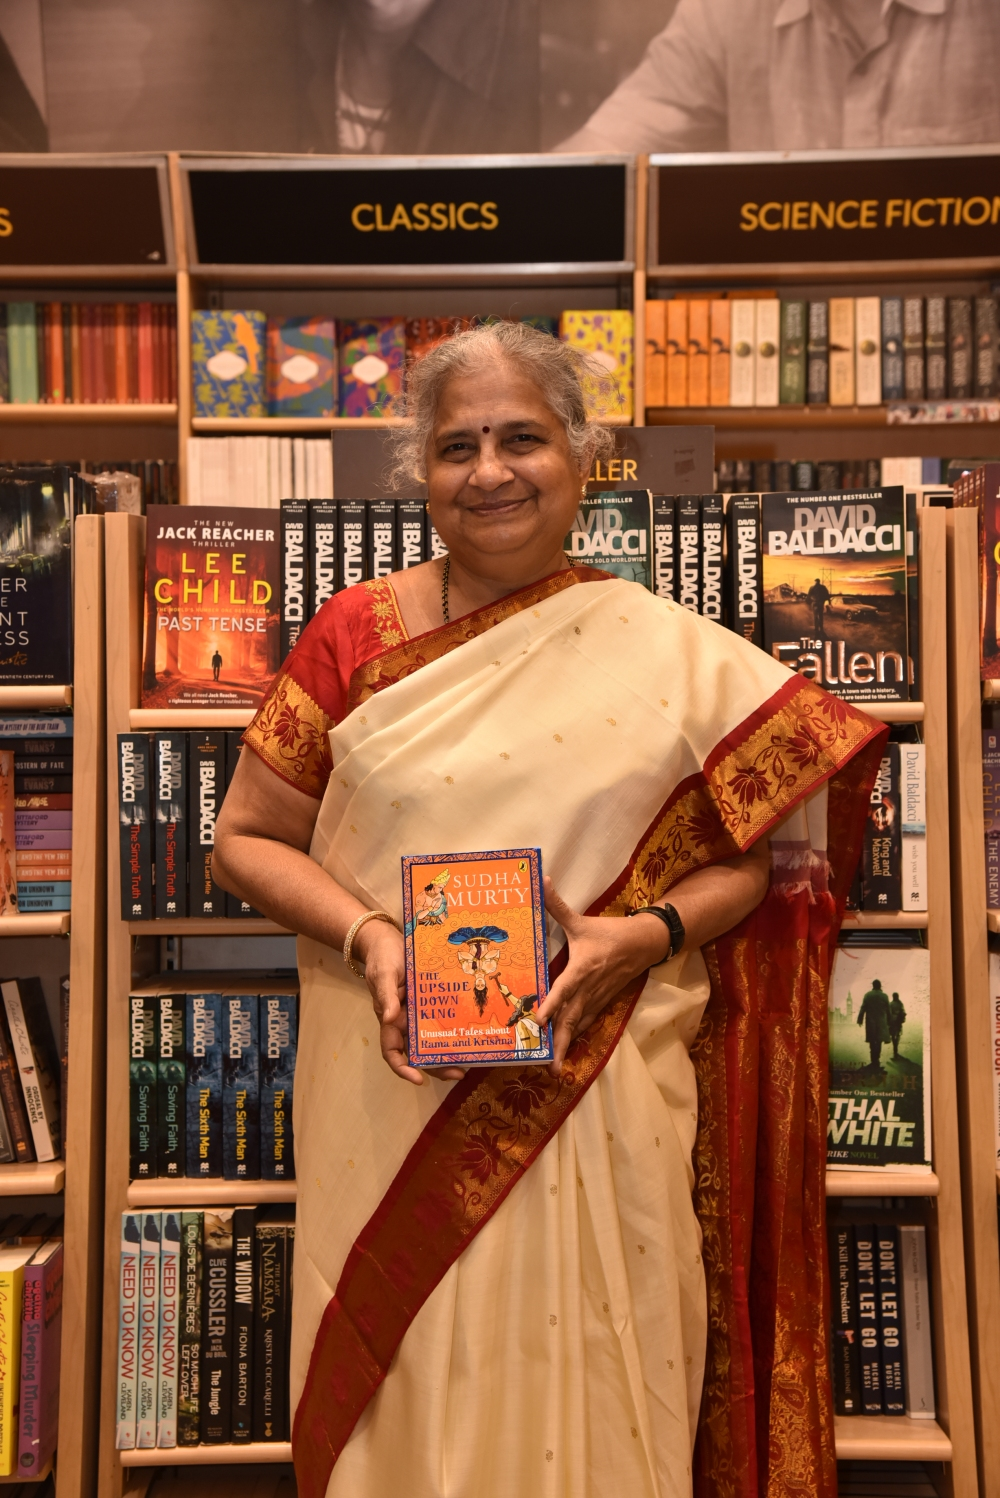 Bestselling children author Sudha Murty at Crossword Kemps corner for launch of her new book The Upside Down King in Mumbai